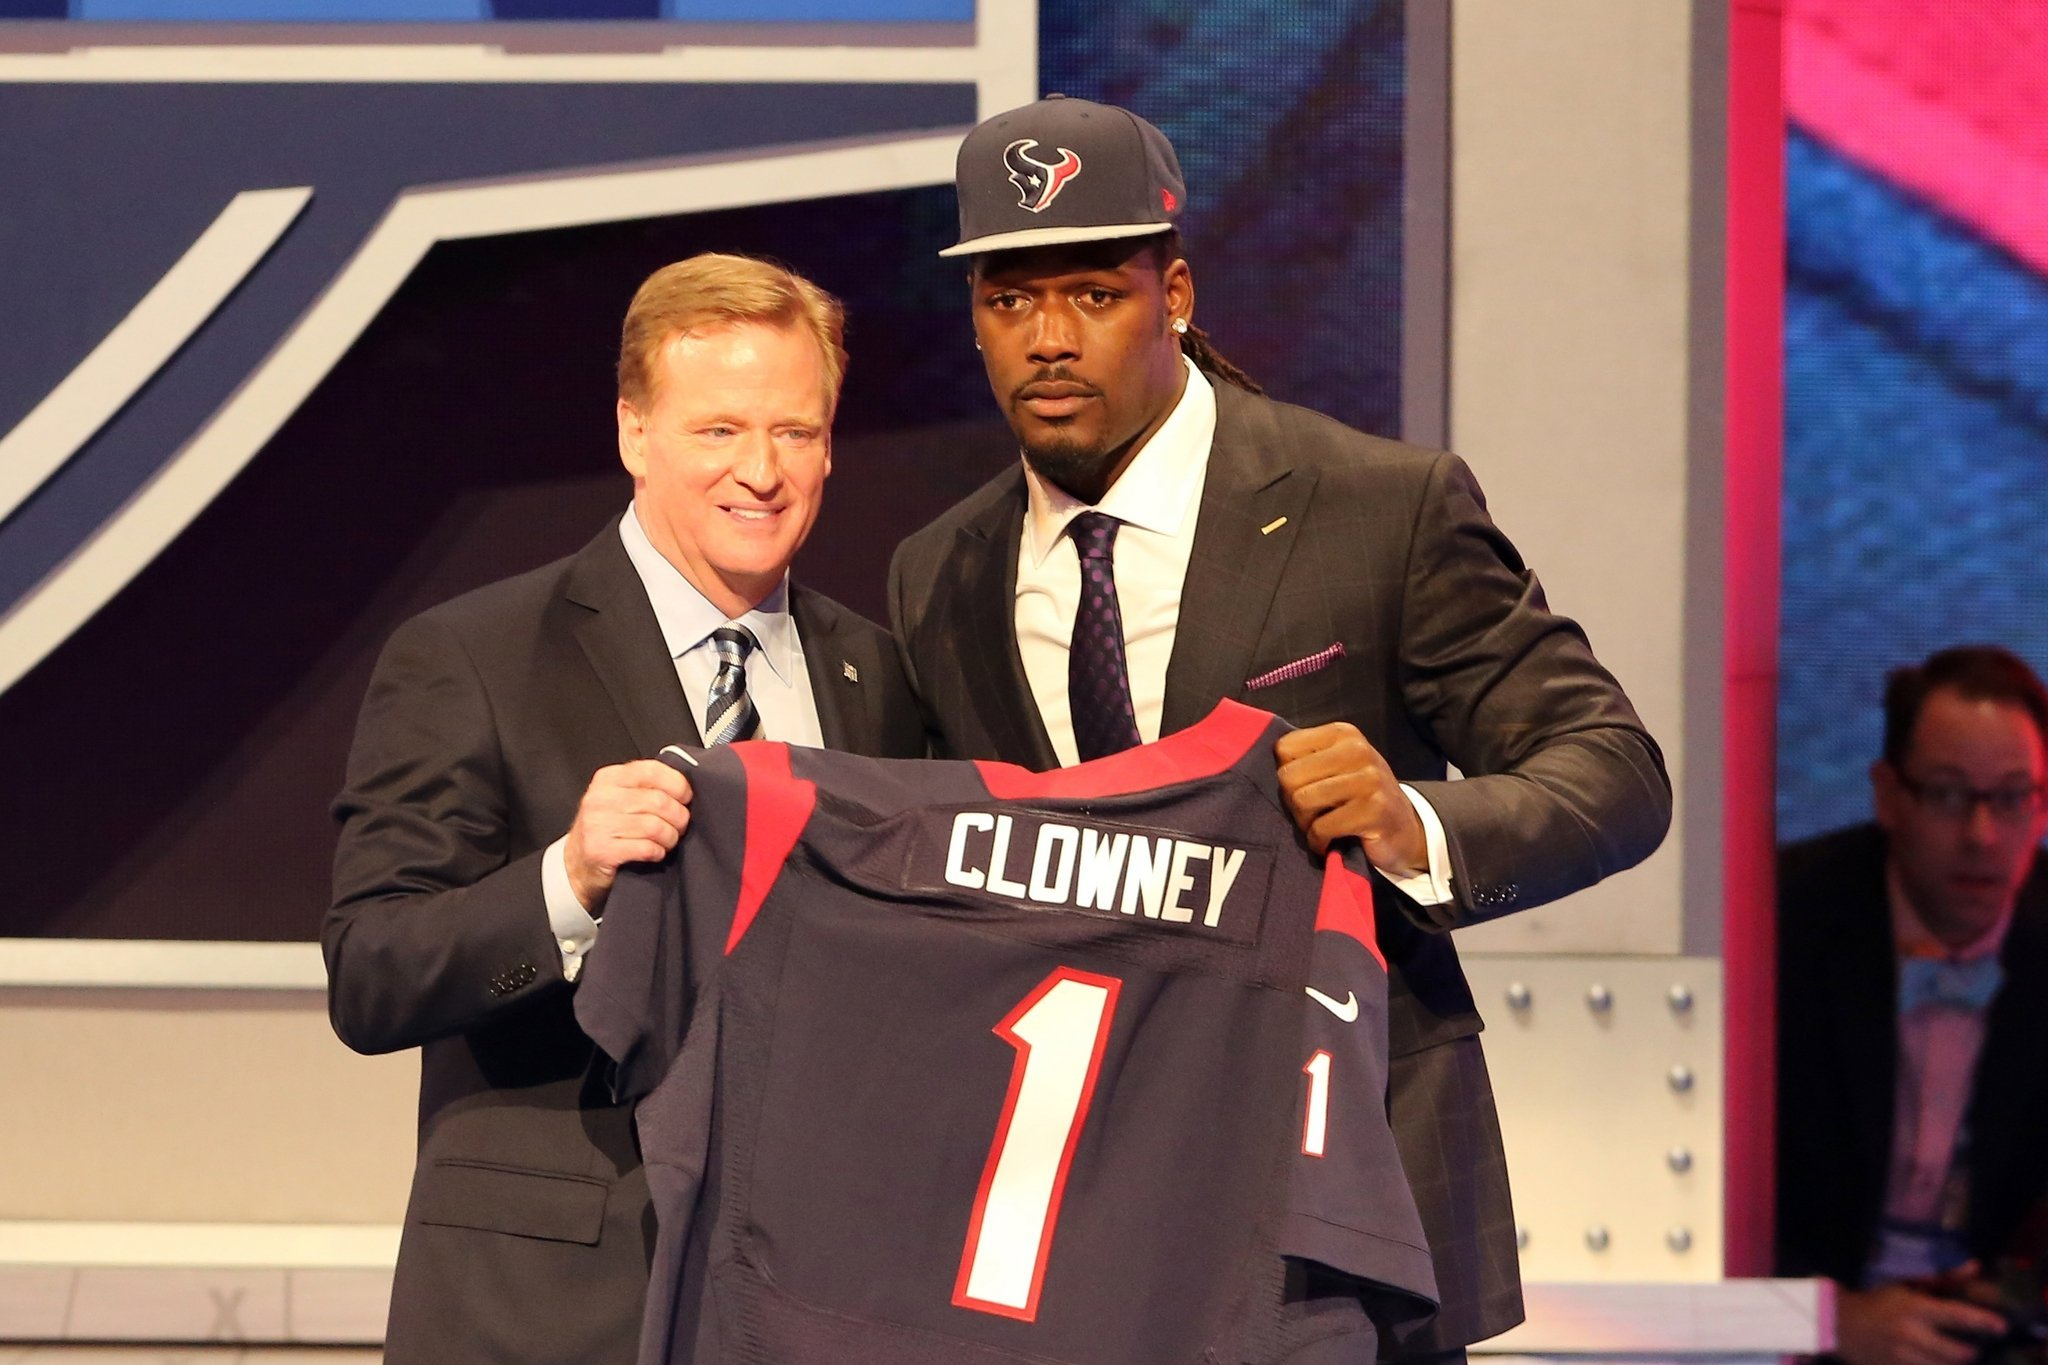 NFL Draft 2014: What they're saying after Round 1